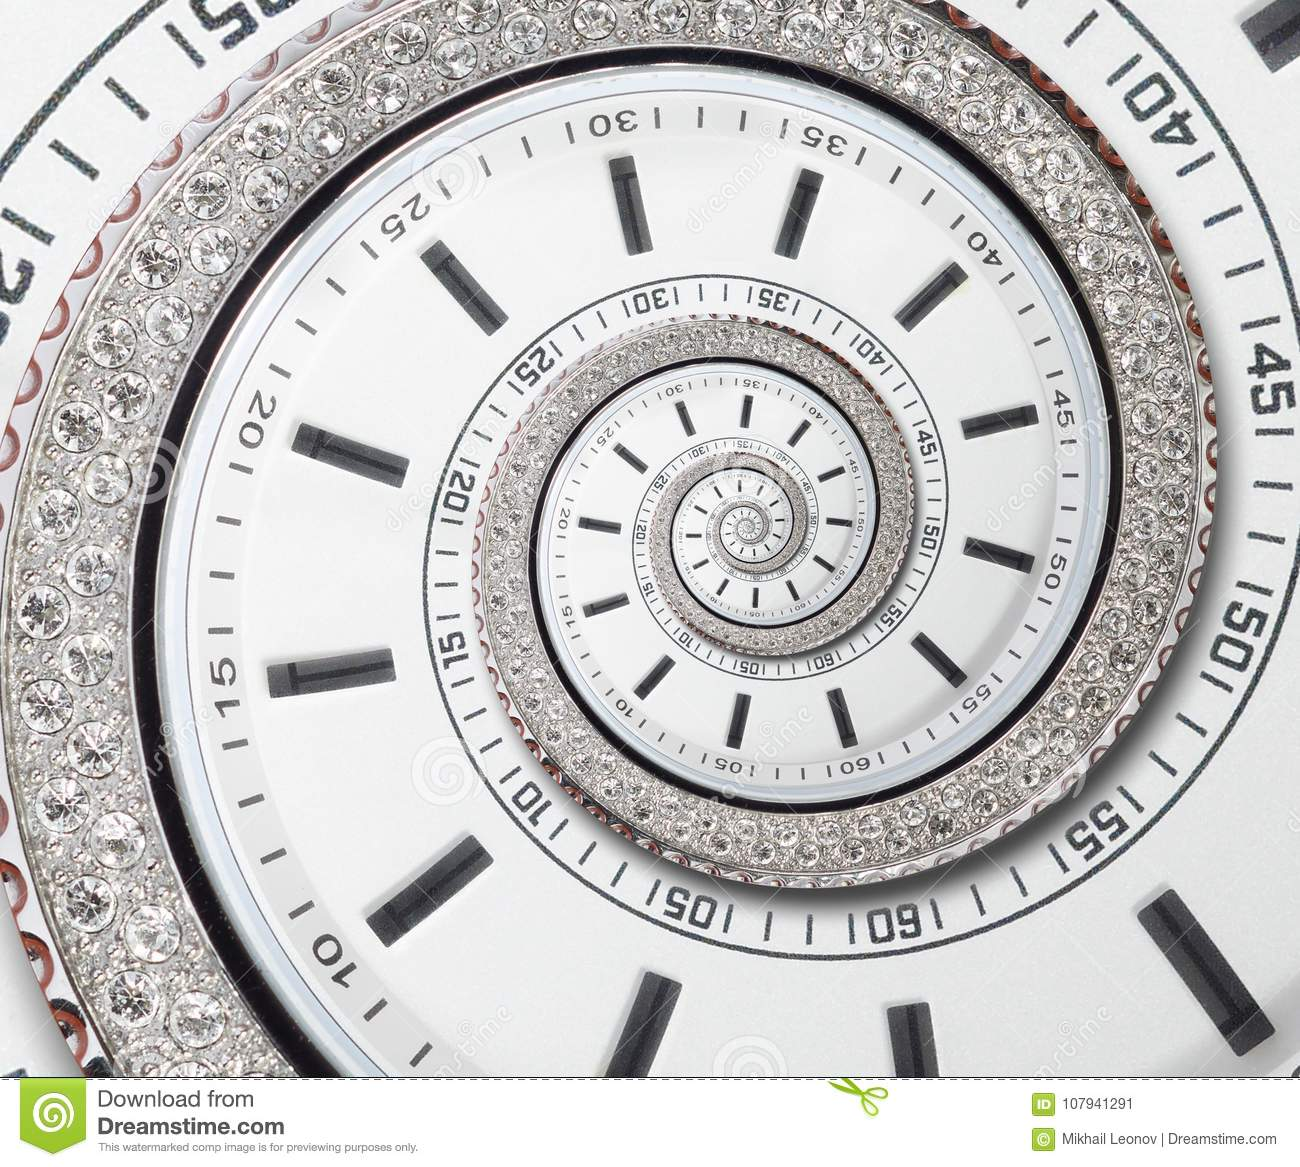 Futuristic modern white clock watch abstract fractal surreal spiral. Watch clock unusual abstract texture pattern fractal backdrop